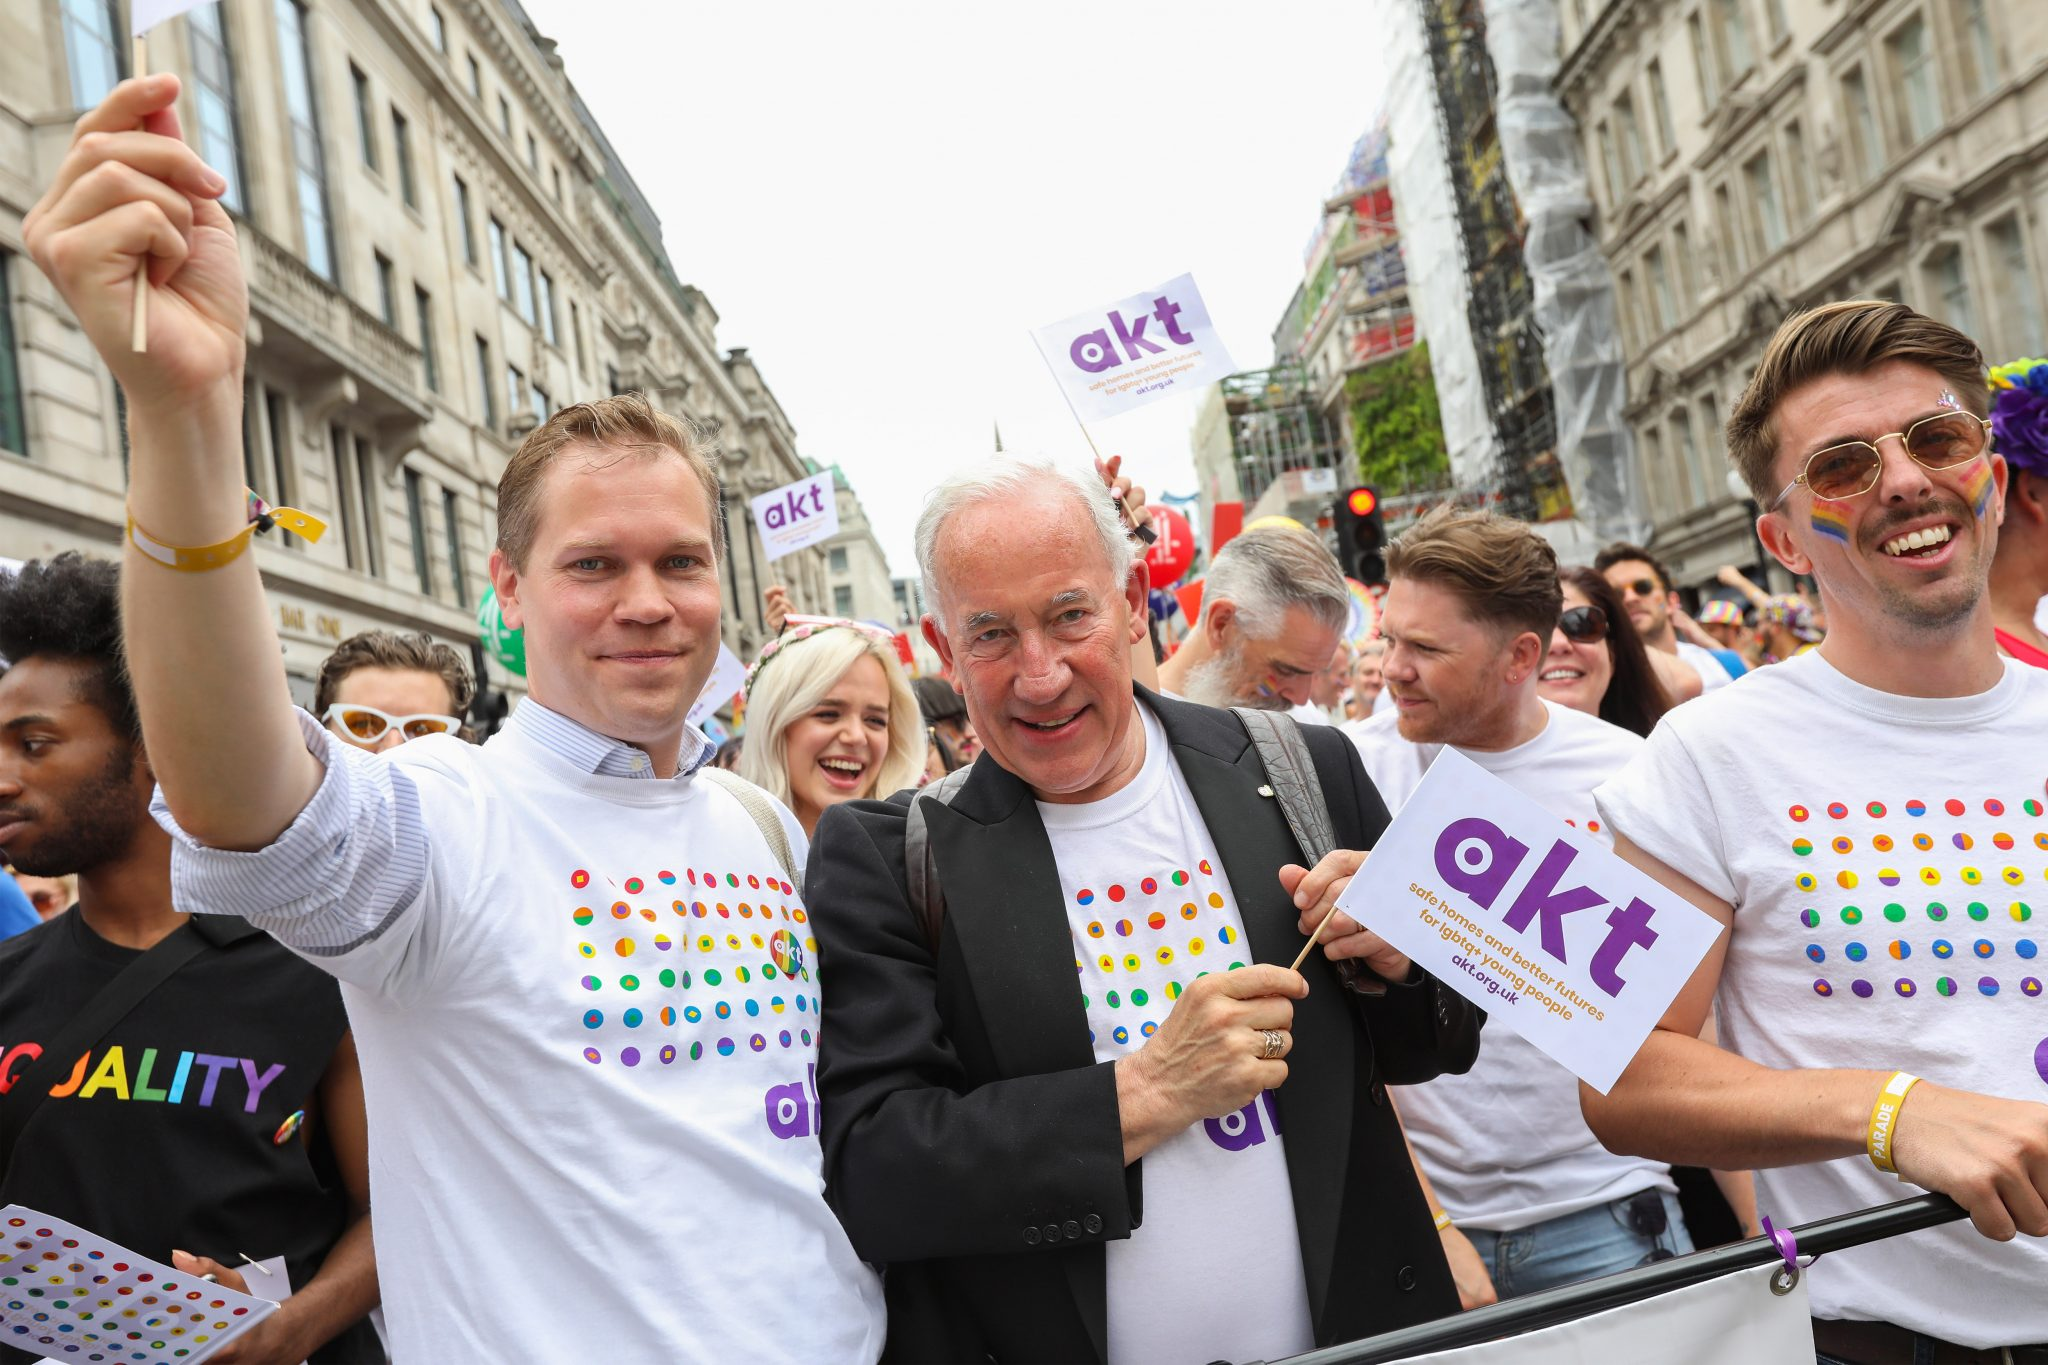 London August 2020 Events.Pride In London Sets The Date For 2020 Means Happy